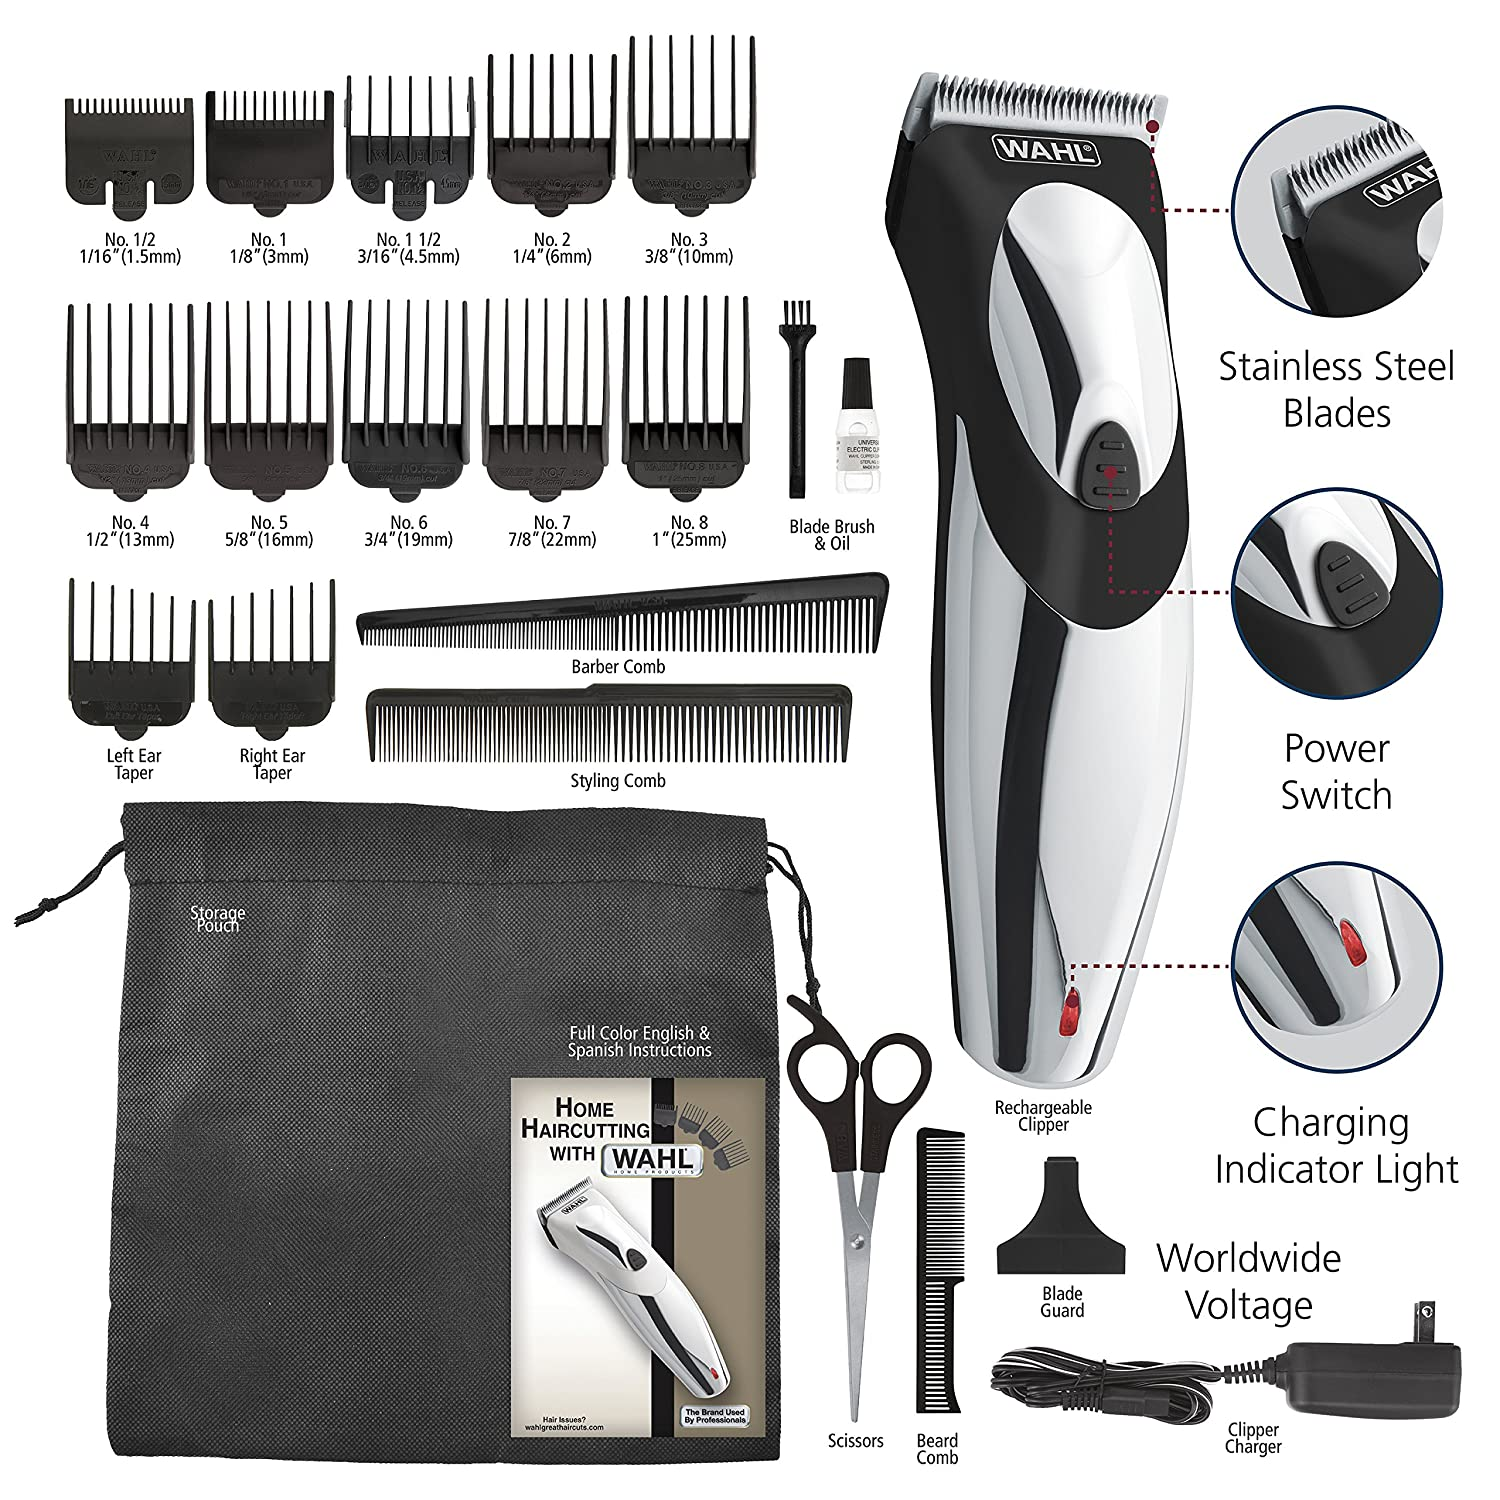 Wahl Haircut and Beard Trimmer Kit